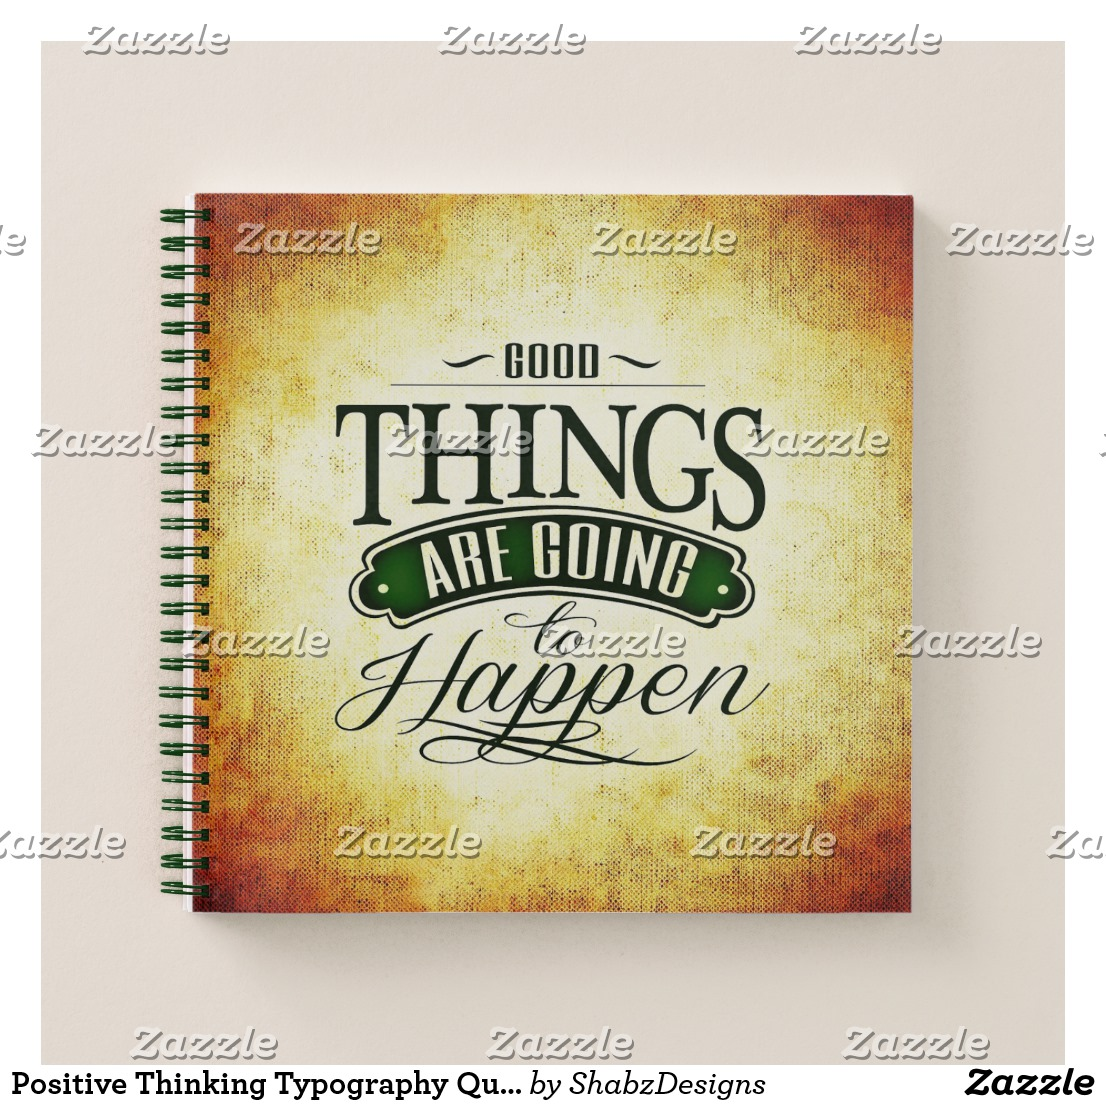 Positive Thinking Typography Quote Vintage Brown Notebook Image